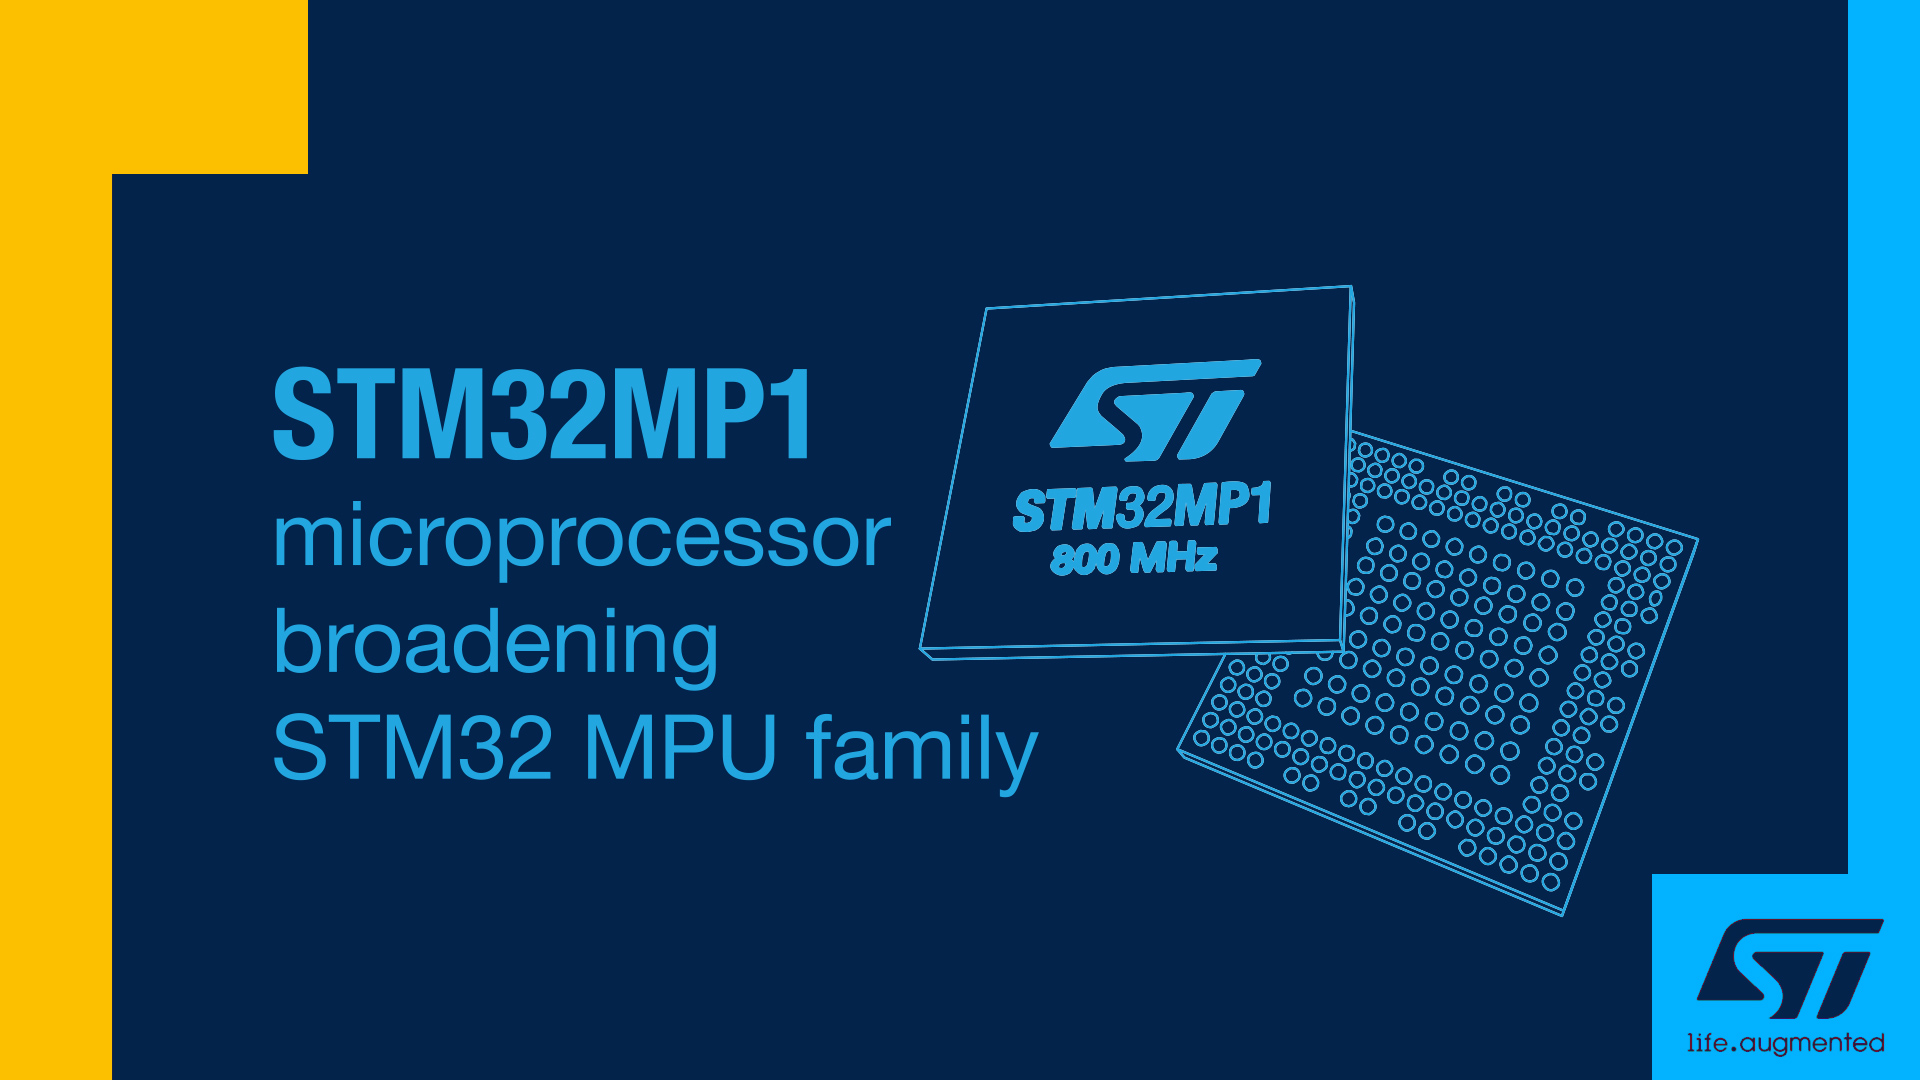 STM32MP1 microprocessor: continuing the STM32 success story !